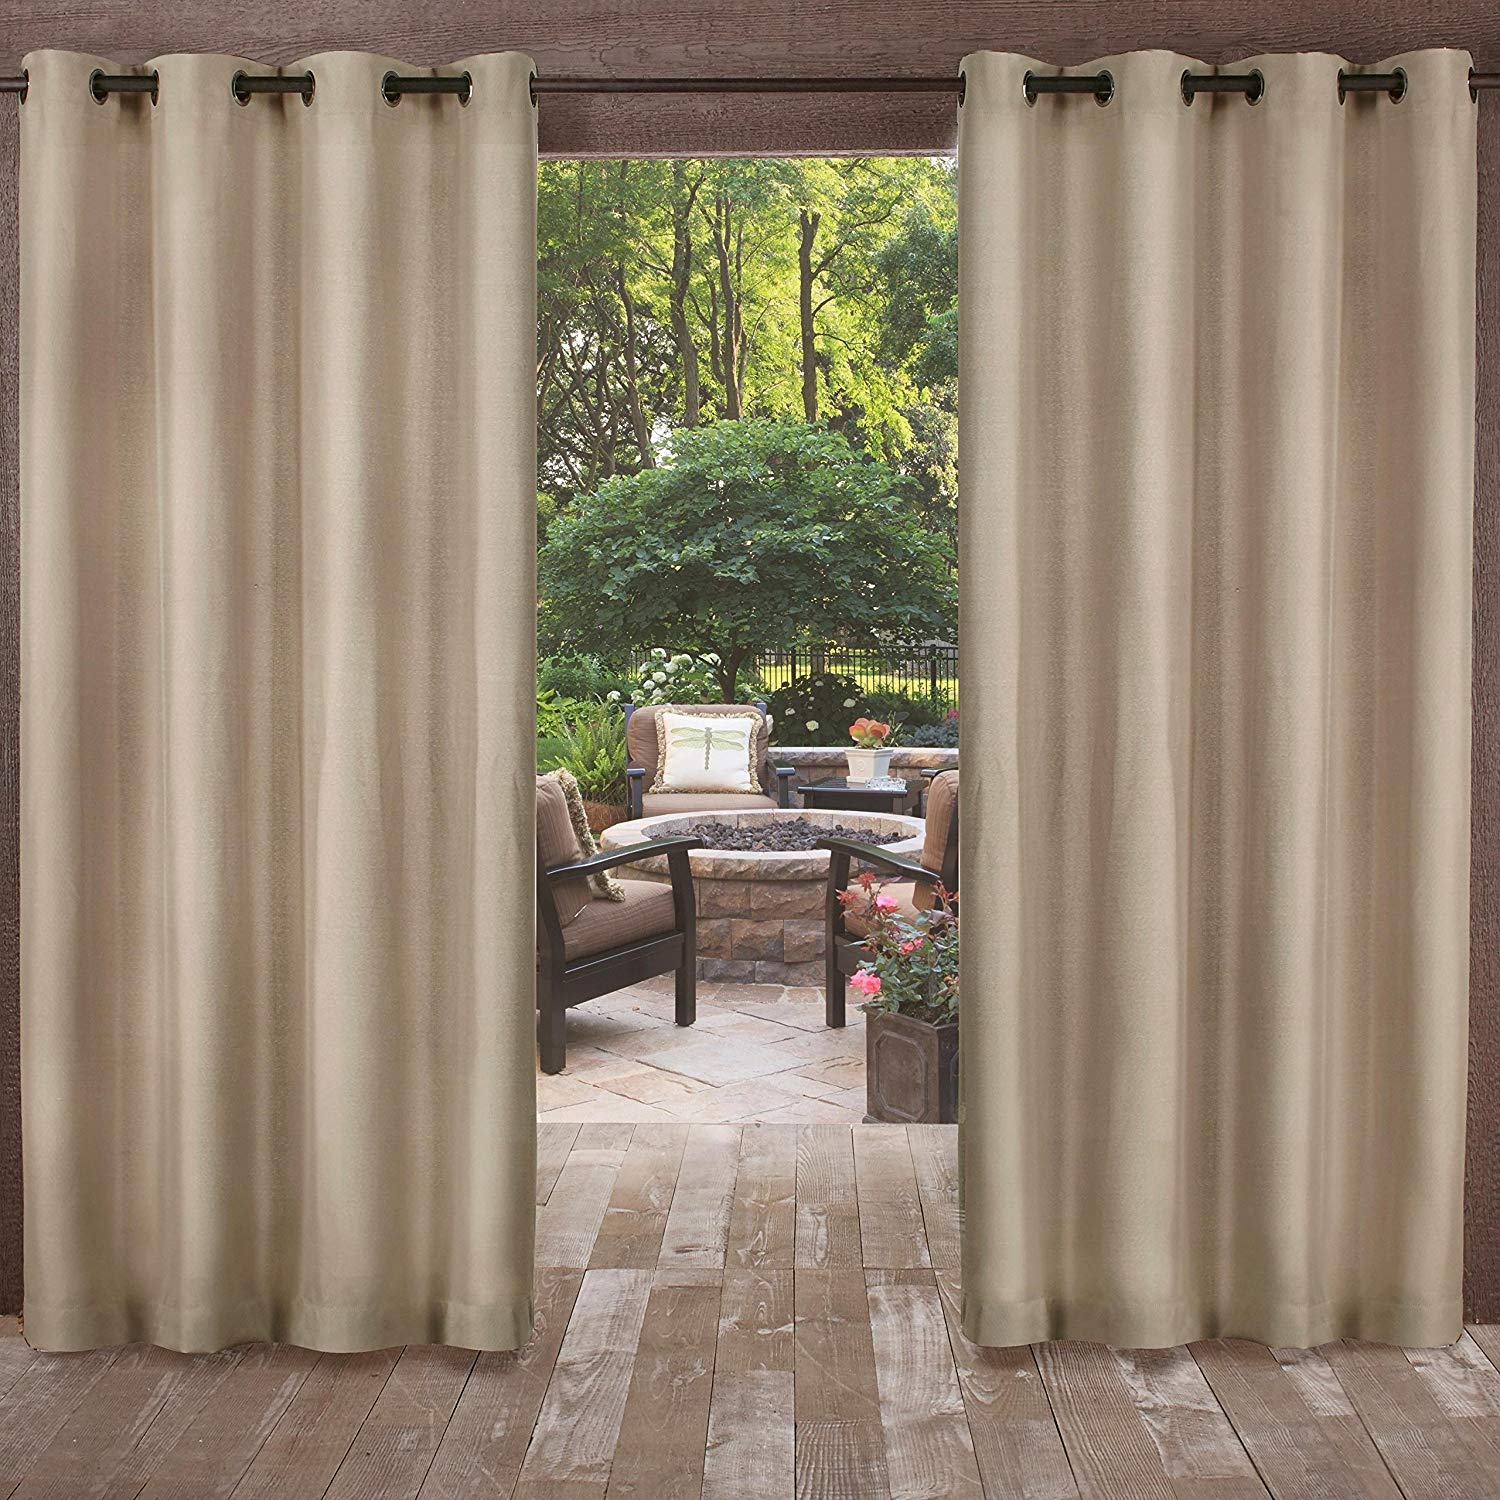 UK4 2 Piece 84 Inch Natural Indoor Outdoor Two Tone Textured Gazebo Curtain, Light Brown Window Treatment Panel Pair, Patio Porch Cabana Dock Grommet Top Pergola Drapes, Casual Contemporary Polyester